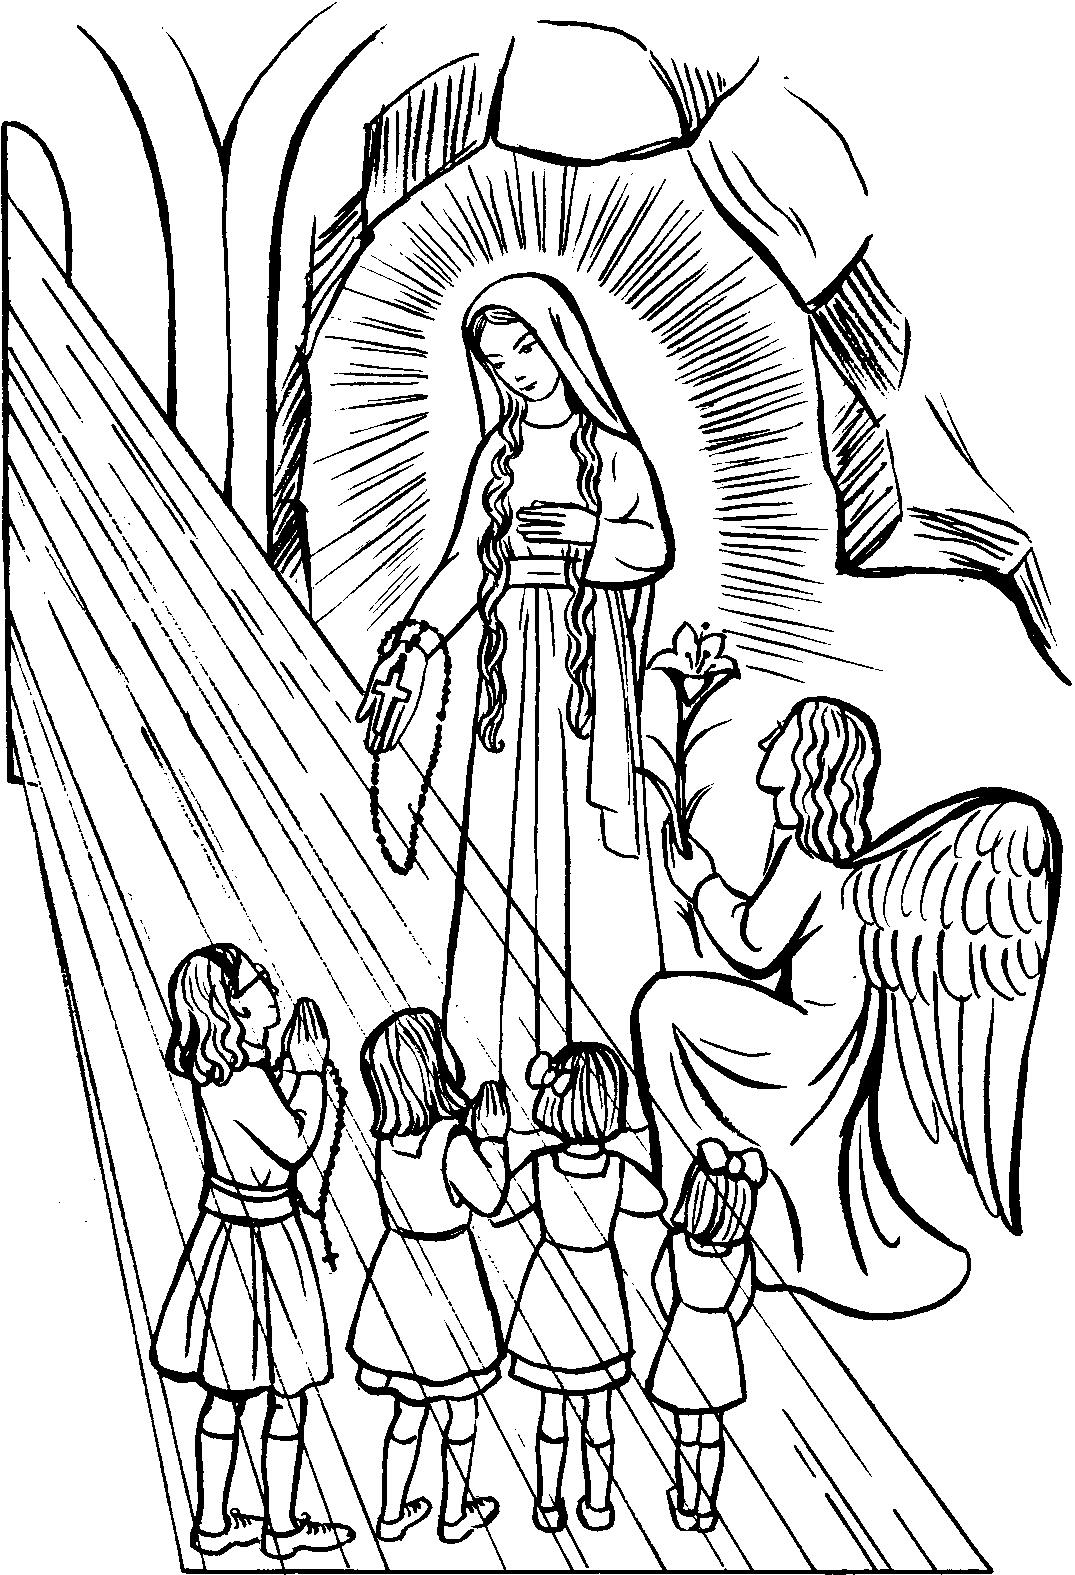 Rosary Coloring Page Rosary Drawing Pictures At Getdrawings Free For Personal Use